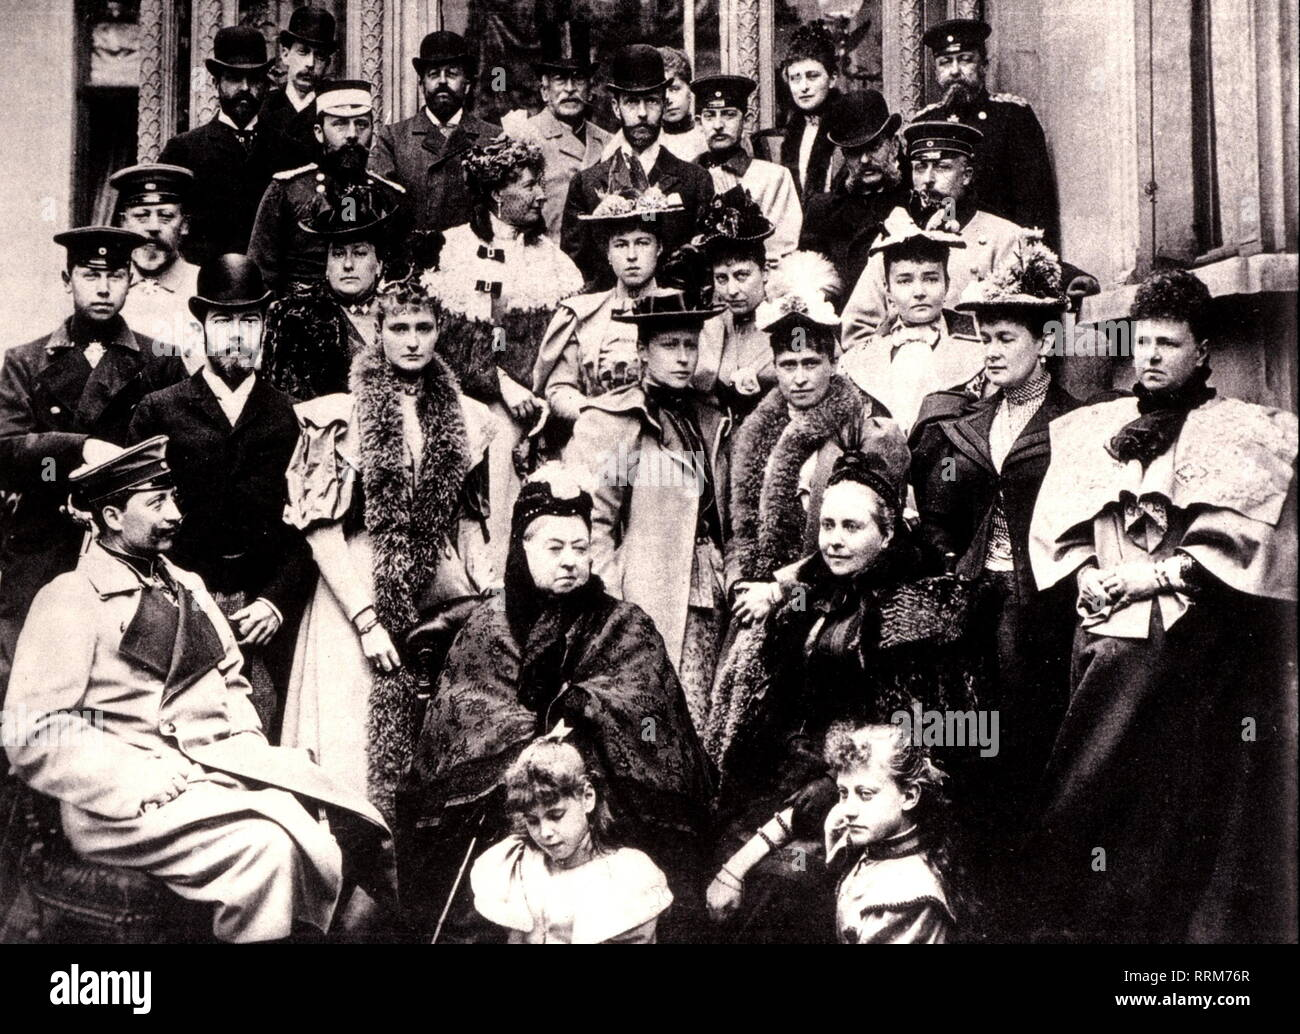 Victoria I, 24.5.1819 - 22.1.1901, Queen of Great Britain and Ireland 1837 - 1901, with her family, in Coburg, 1889, Additional-Rights-Clearance-Info-Not-Available - Stock Image